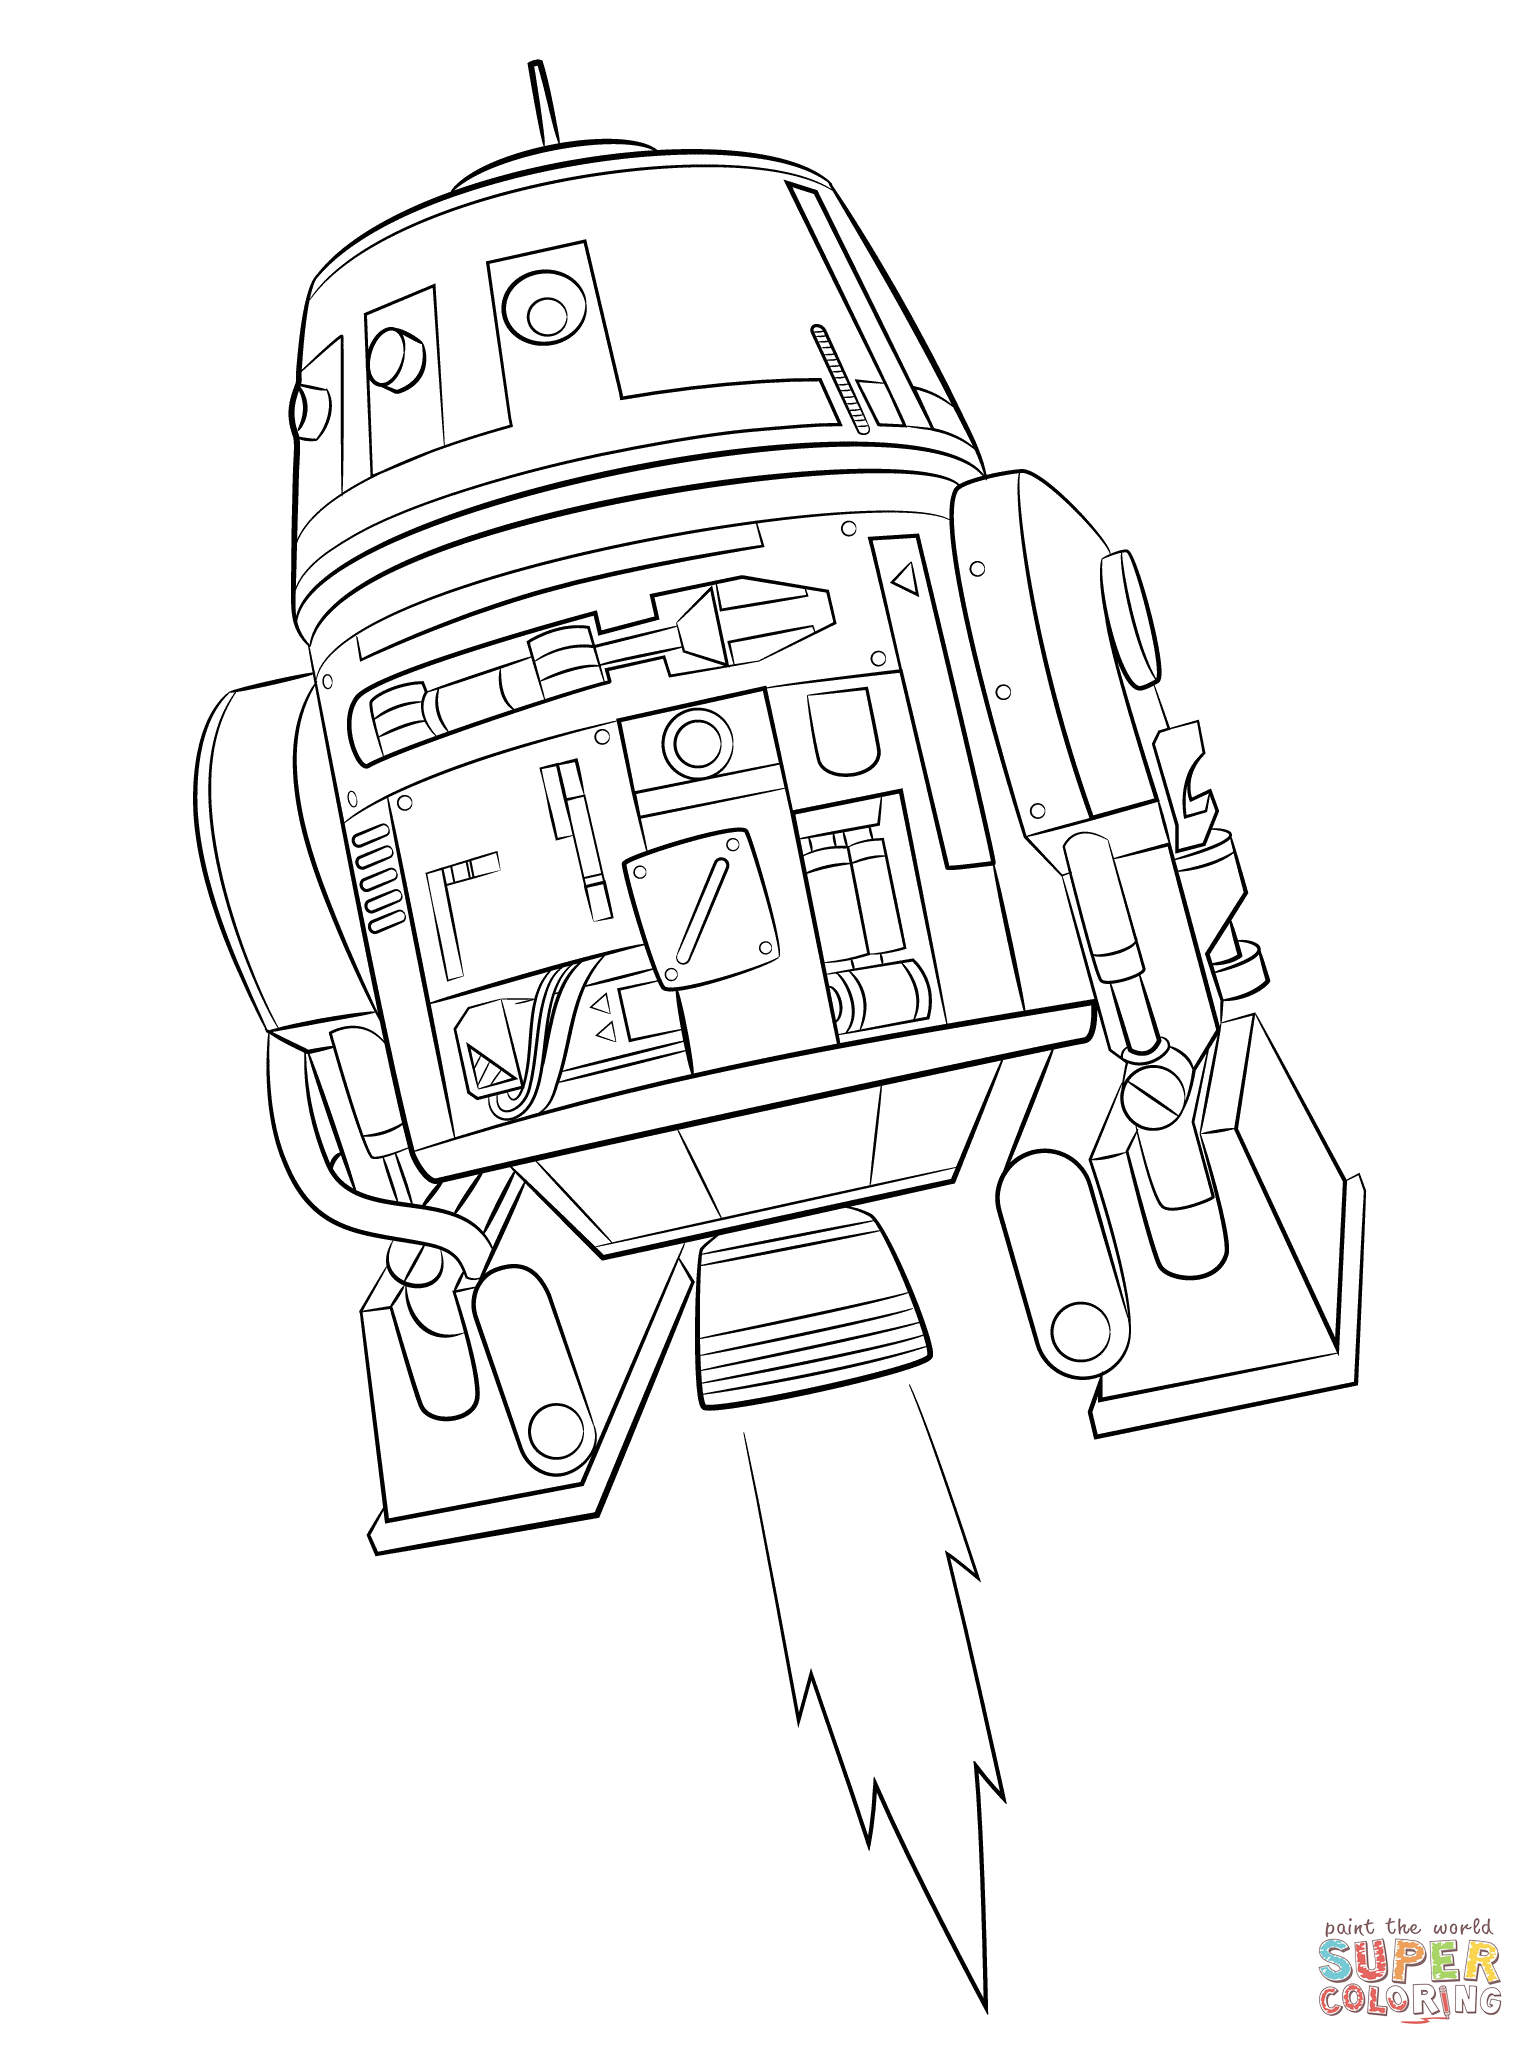 Disegni Da Colorare Star Wars Rebels.Star Wars Rebels Chopper Coloring Page Star Wars Drawings Star Wars Coloring Sheet Star Wars Kids